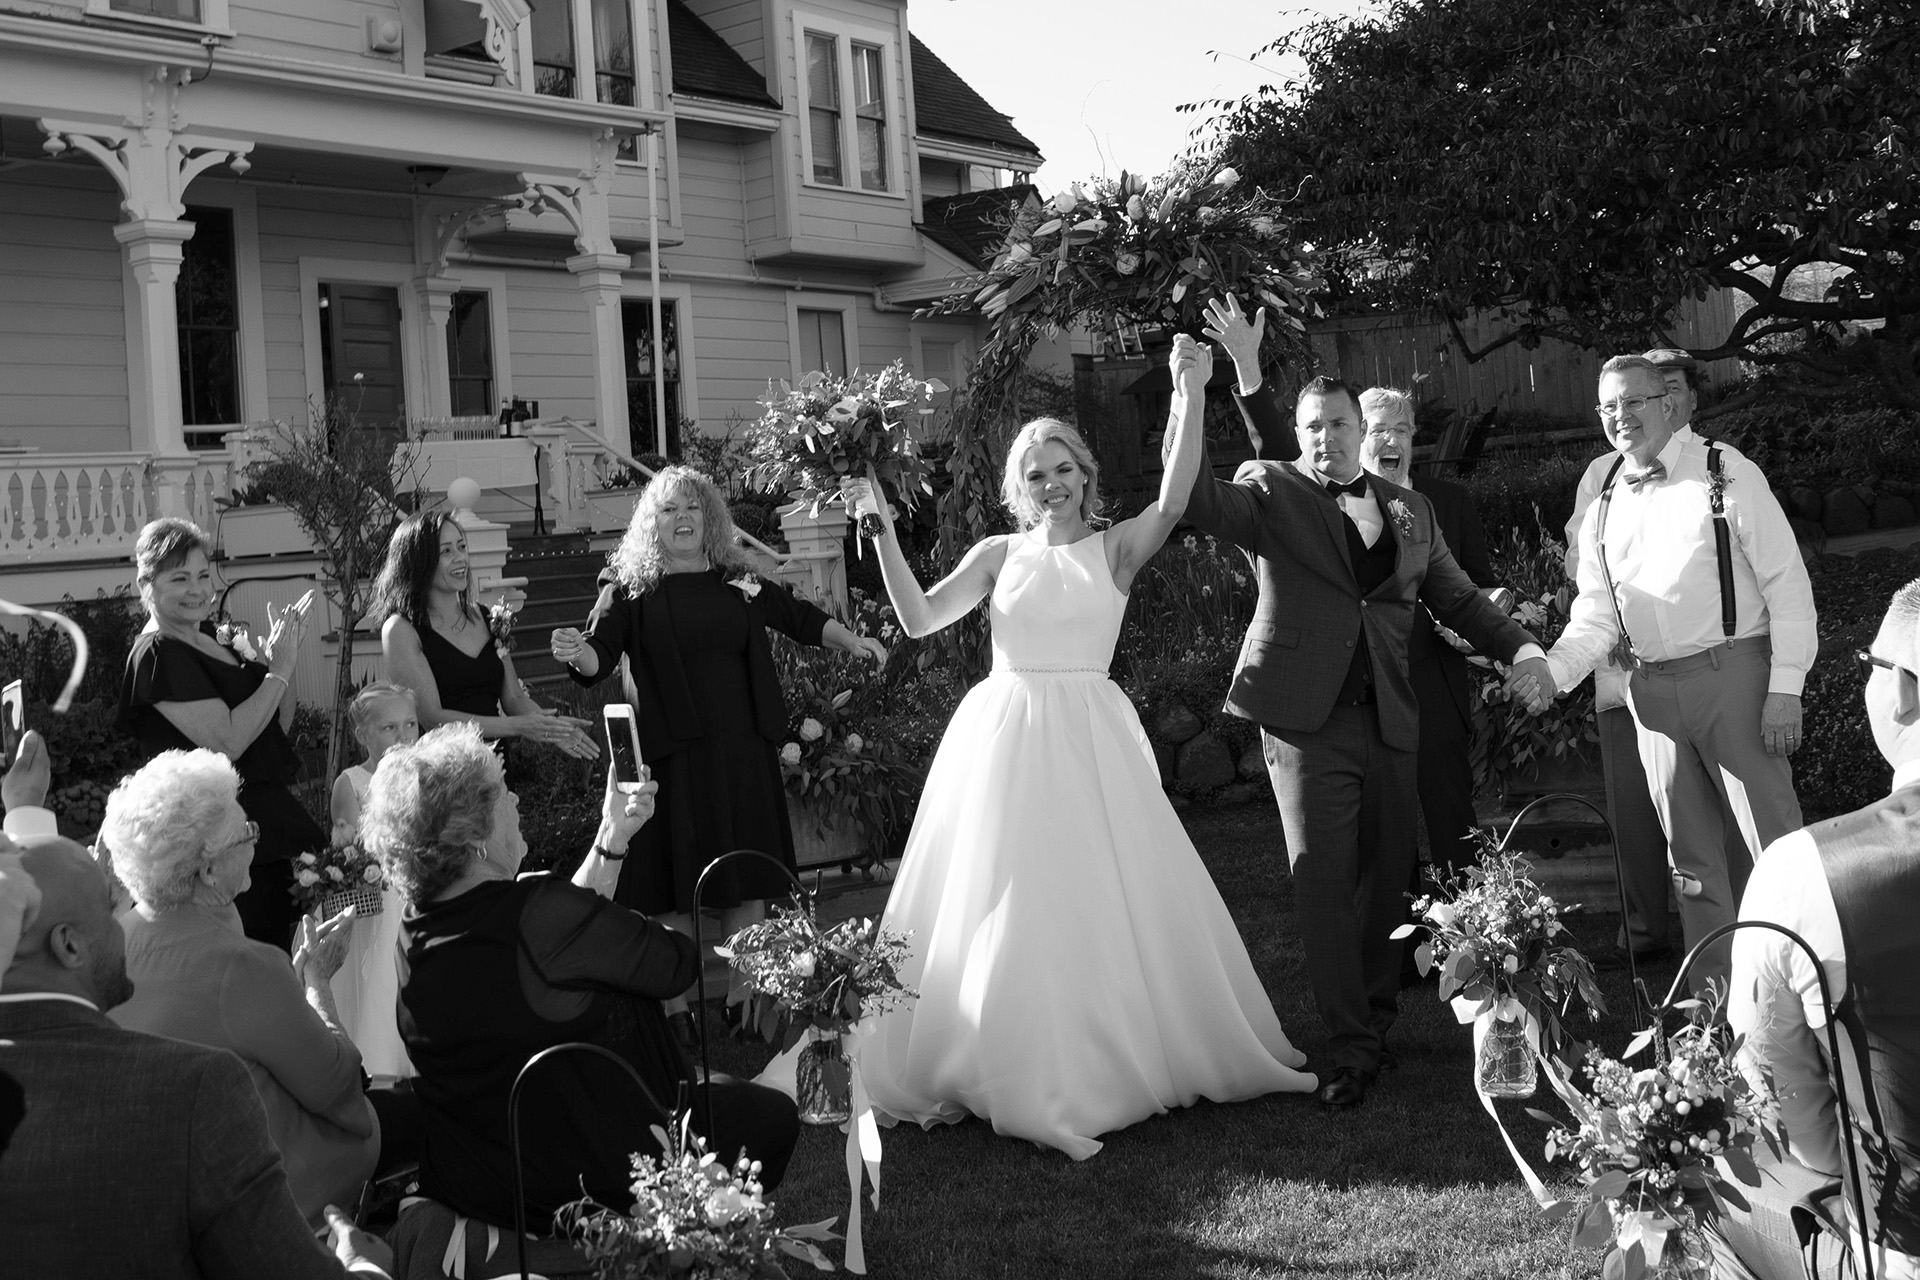 Outdoor Ceremony Elopement Photography - California Weddings | The moment of celebration after the bride and groom are announced